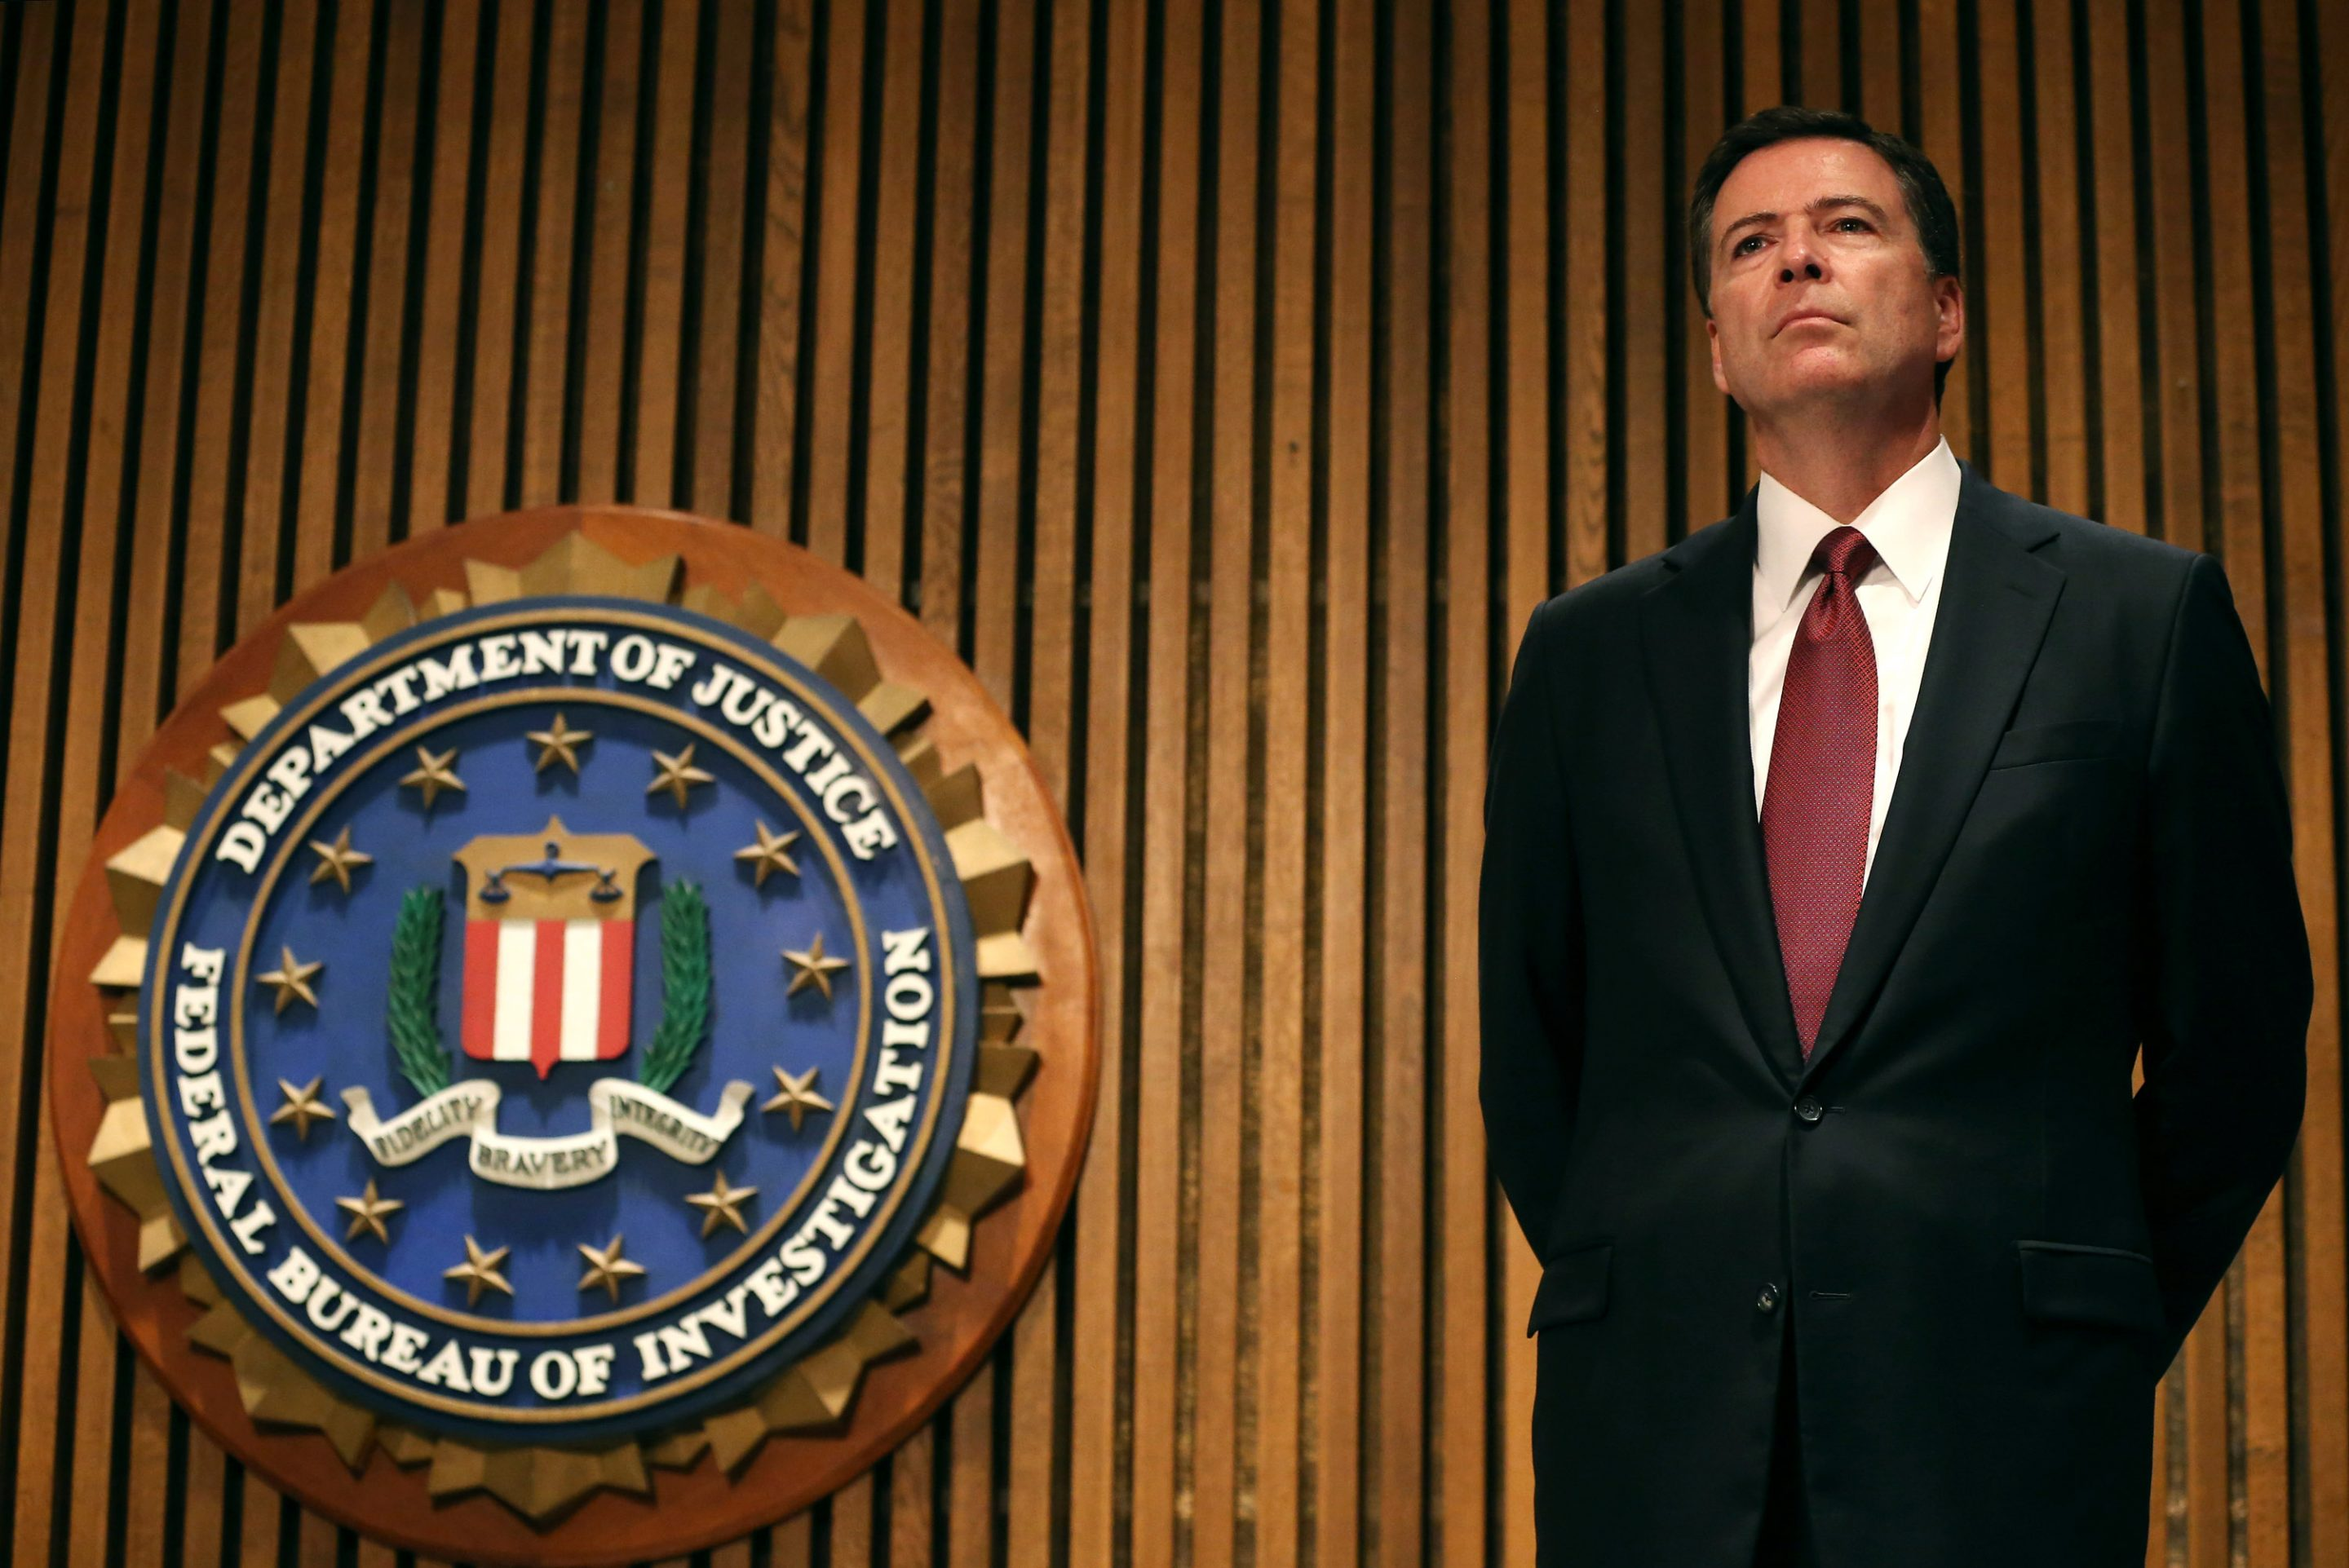 FBI Director James Comey participates in a news conference at FBI headquarters, June 23, 2014, in Washington, D.C.